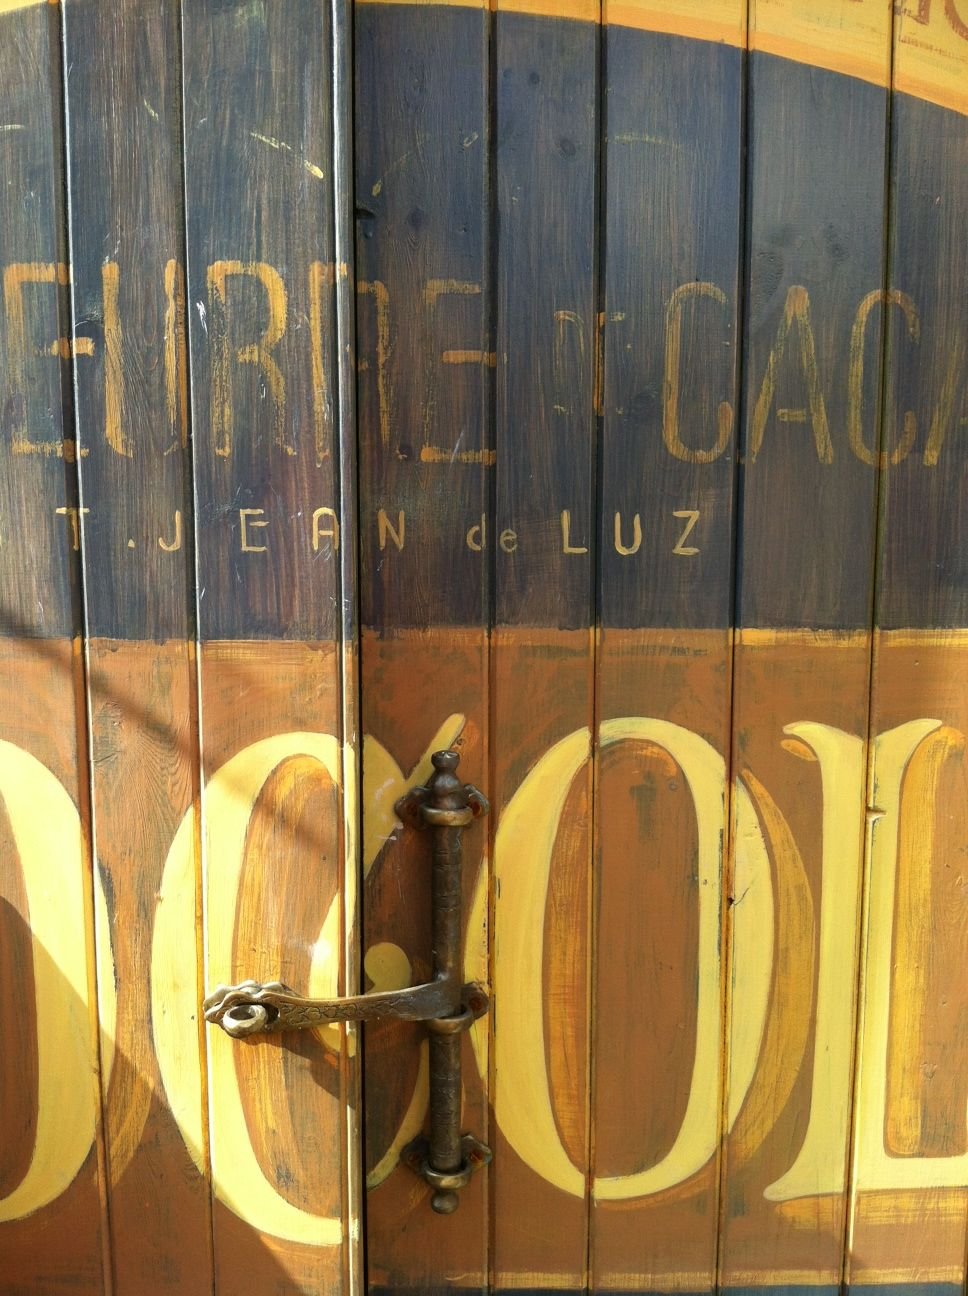 Designed hand painted and written garage doors with an